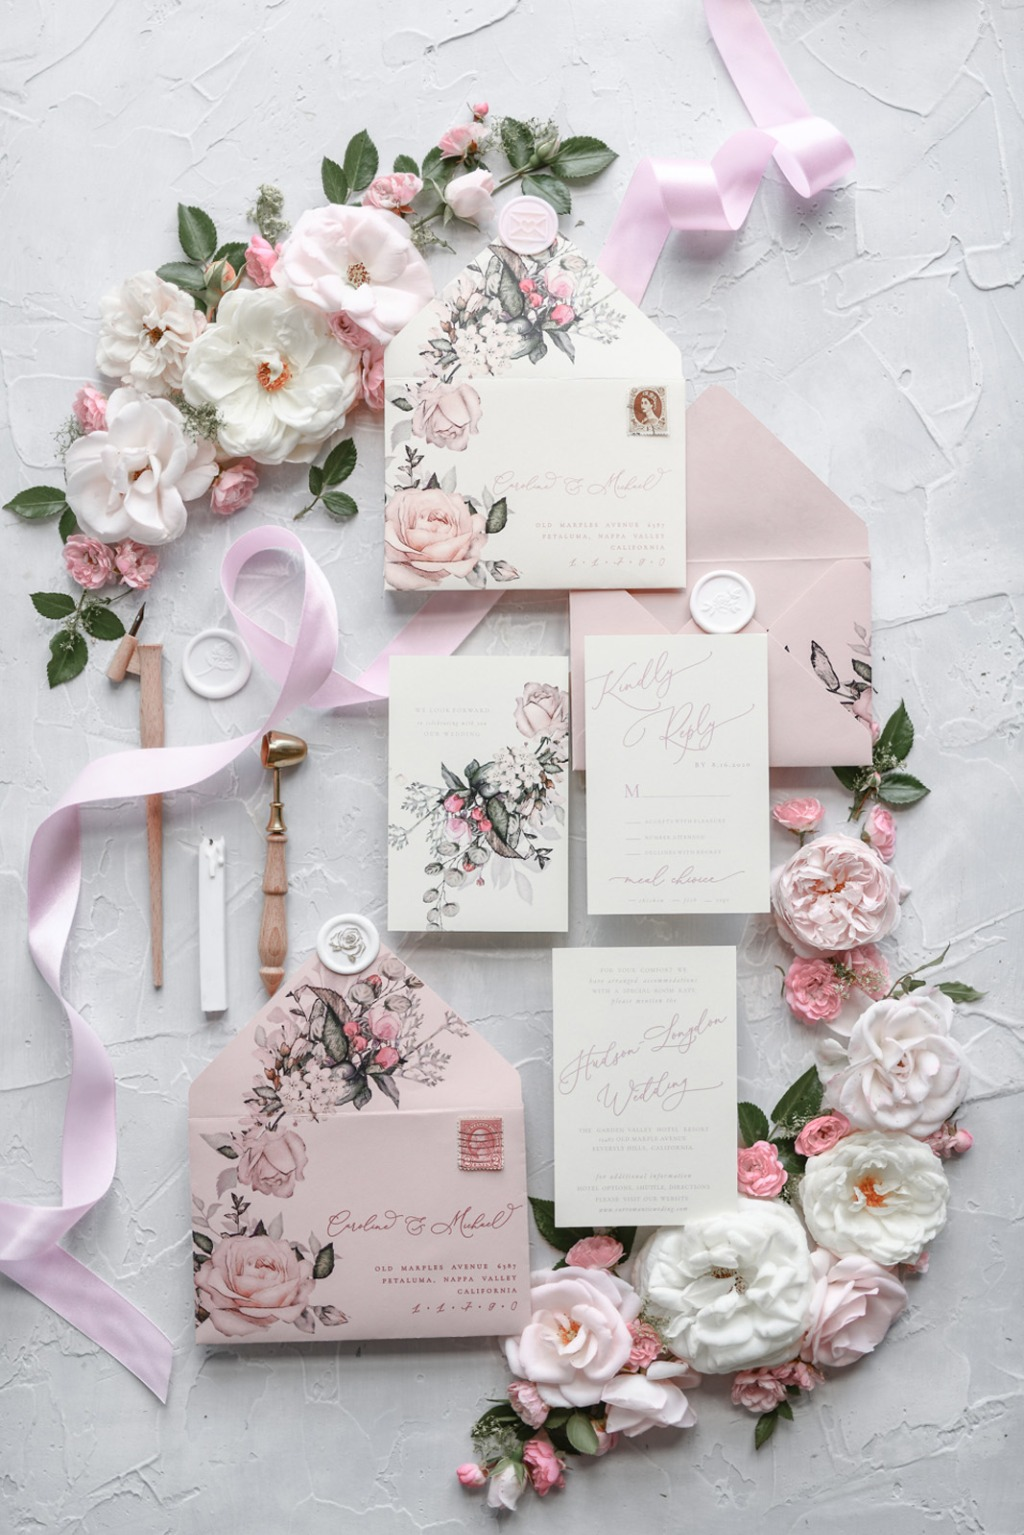 Wedding invitations with garden roses